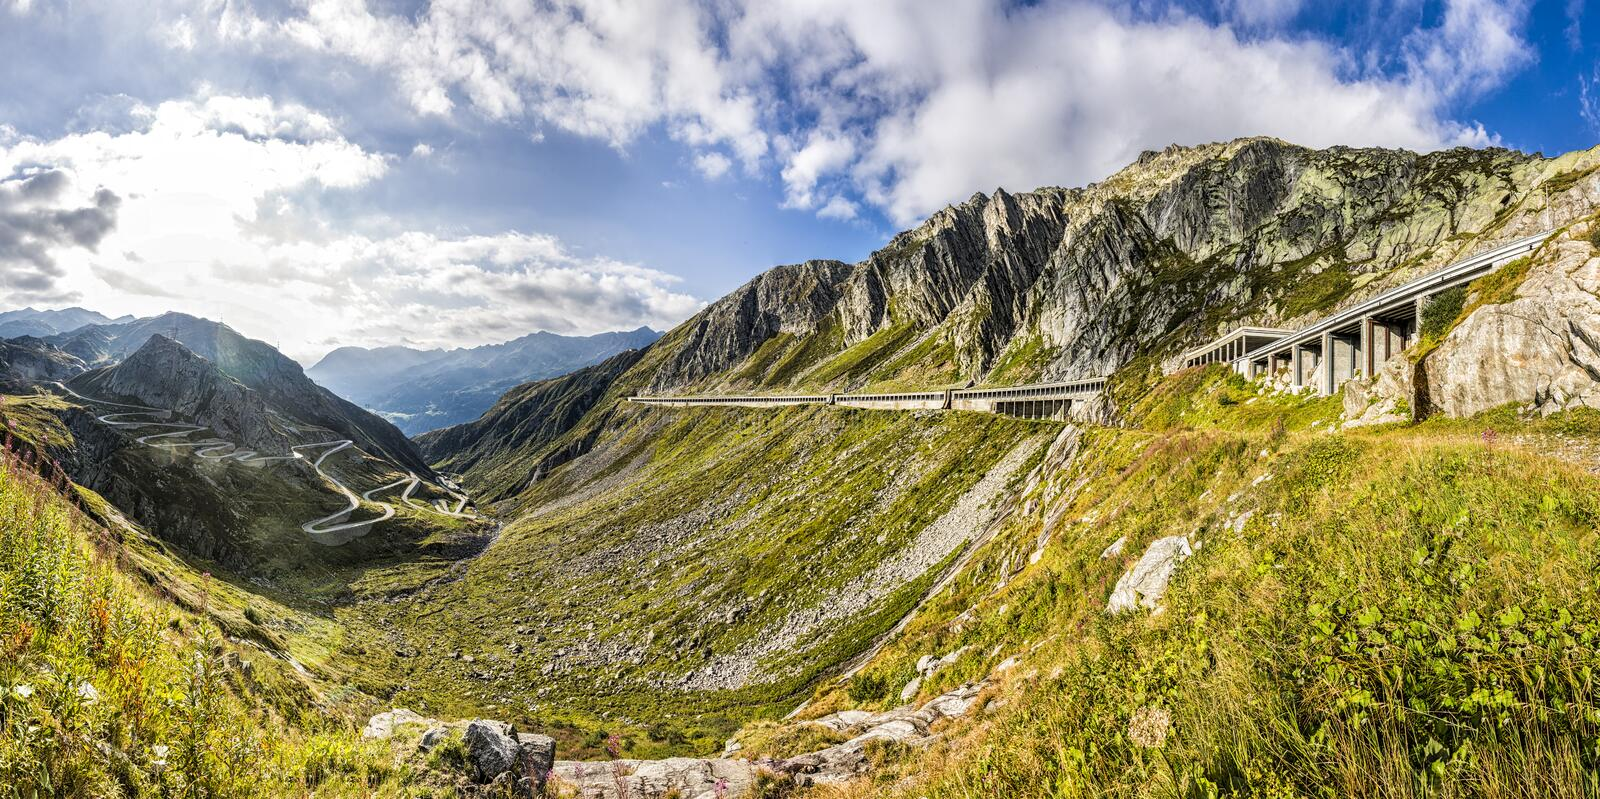 Route pour passer Gotthard photo libre de droits